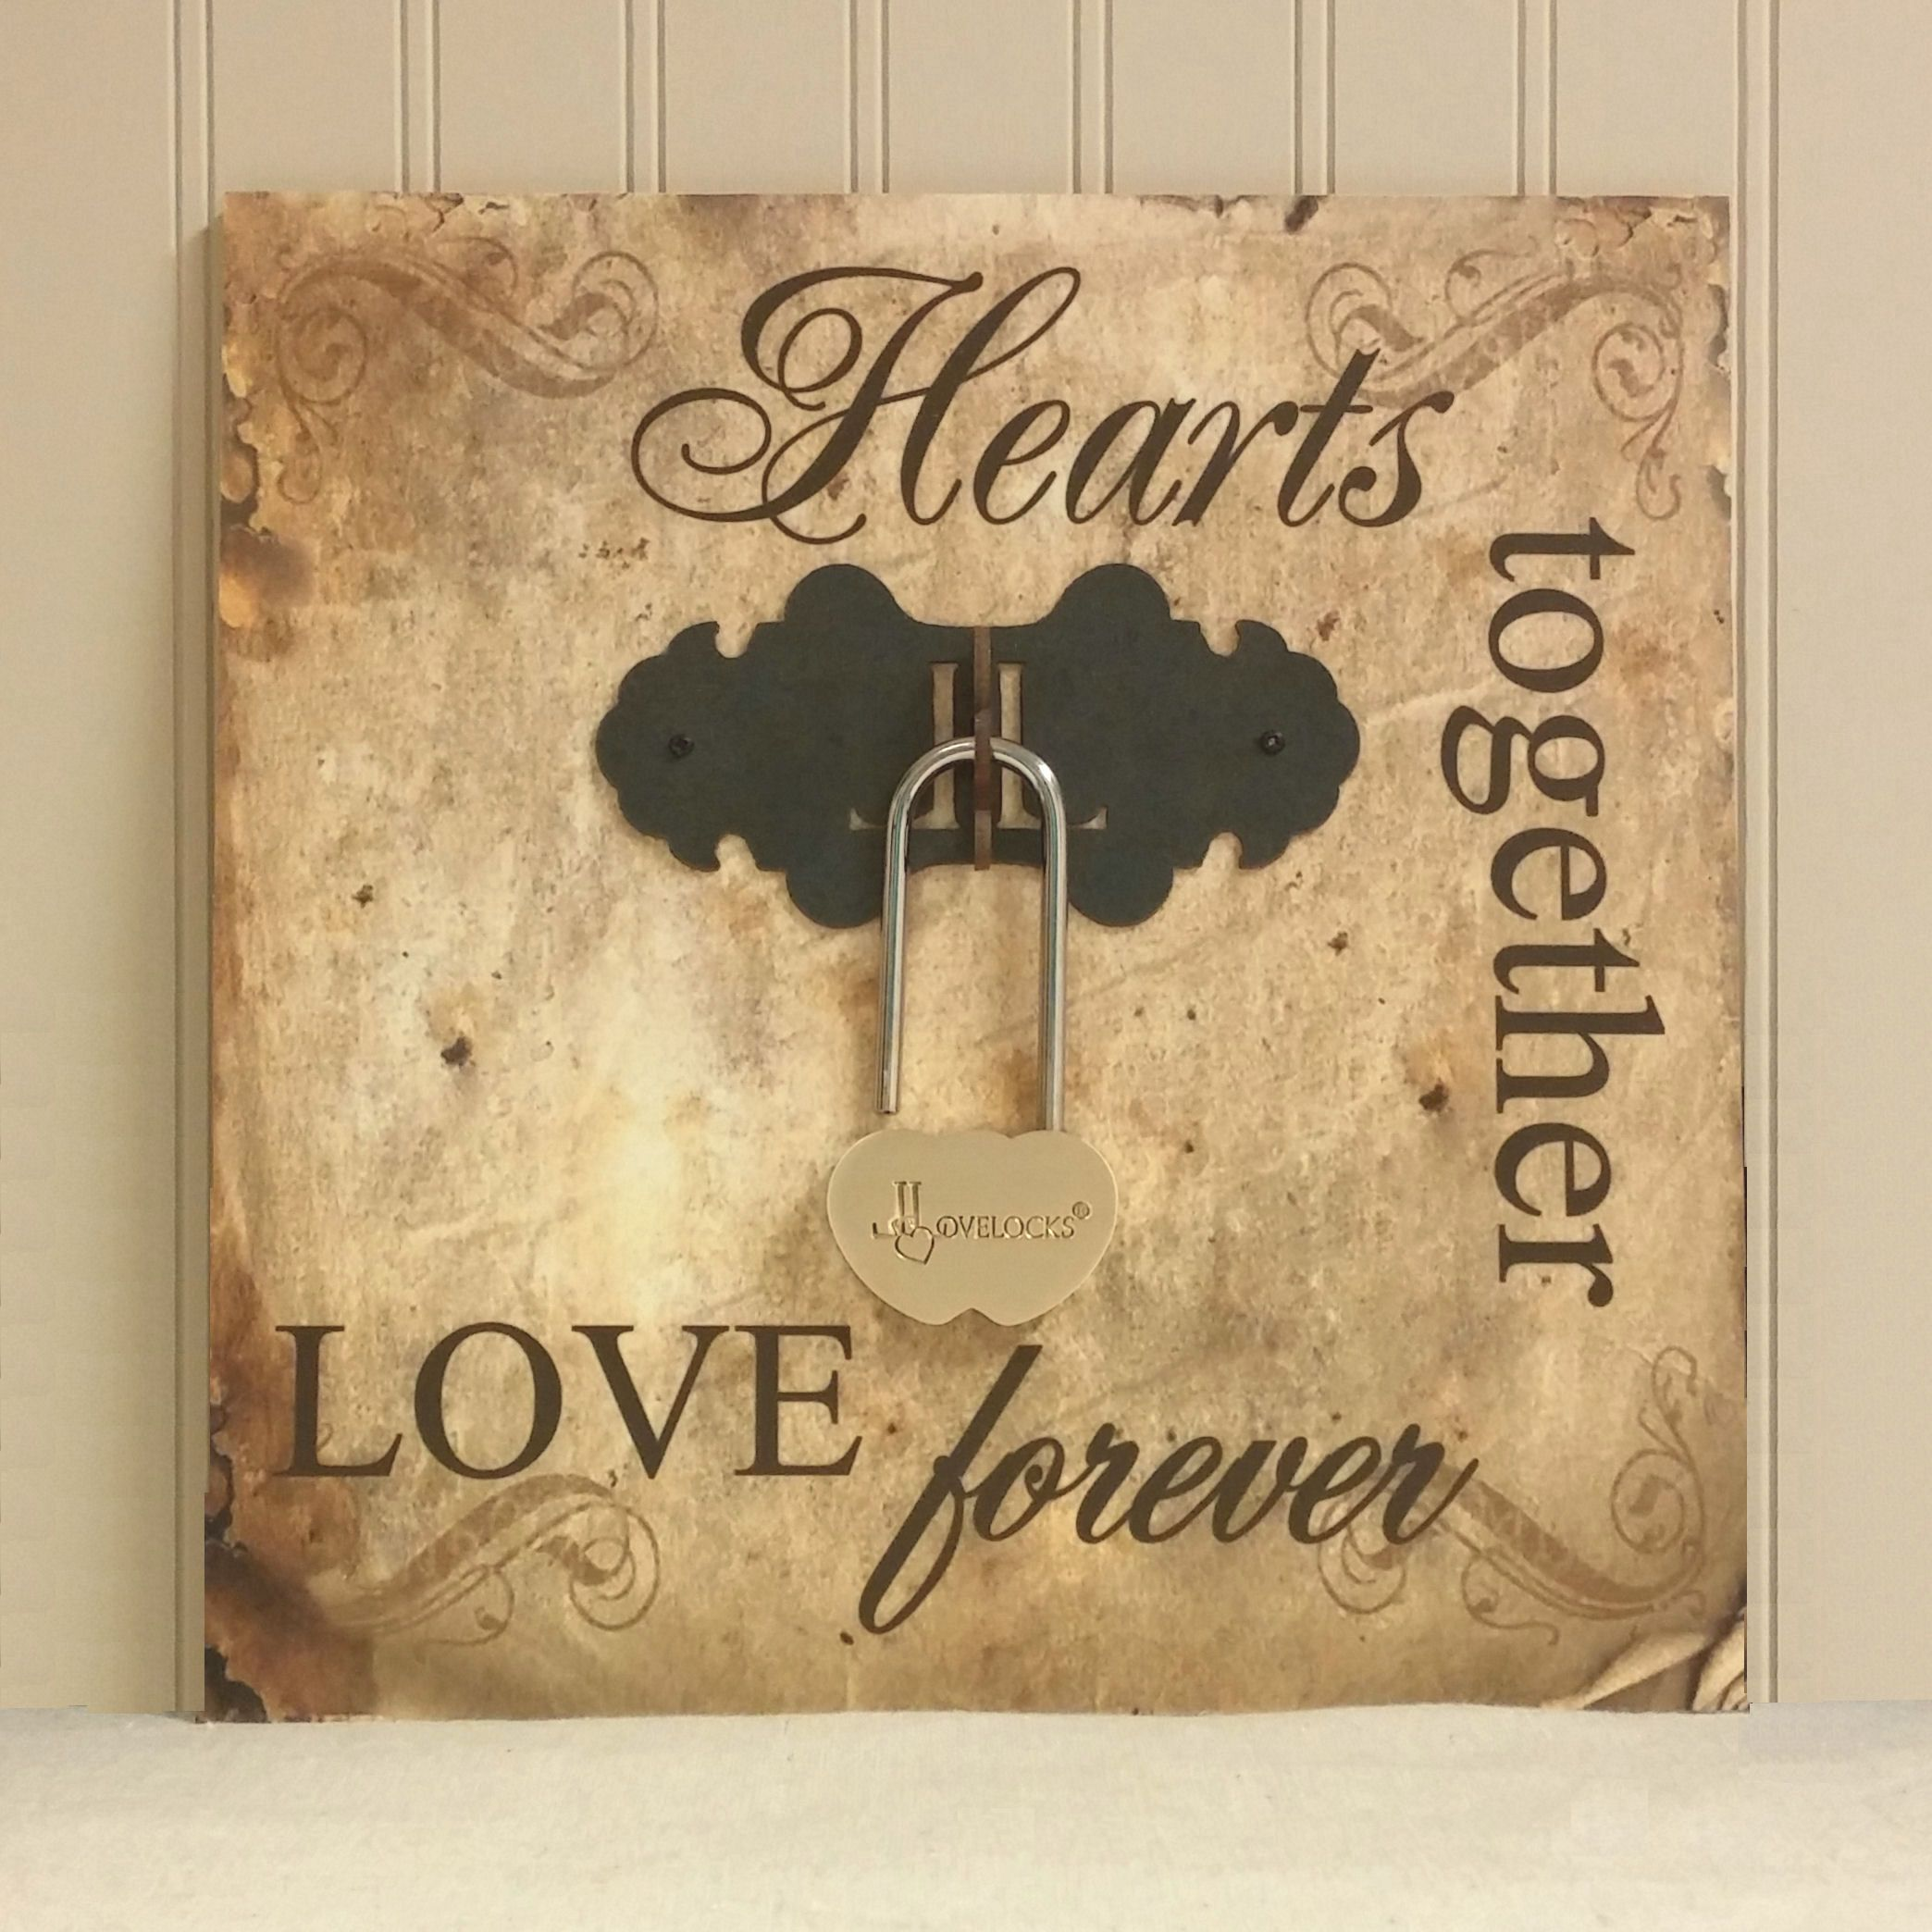 Explore Wedding Unity Ideas Ceremonies And More Love Lock Ceremony In Place Of A Candle